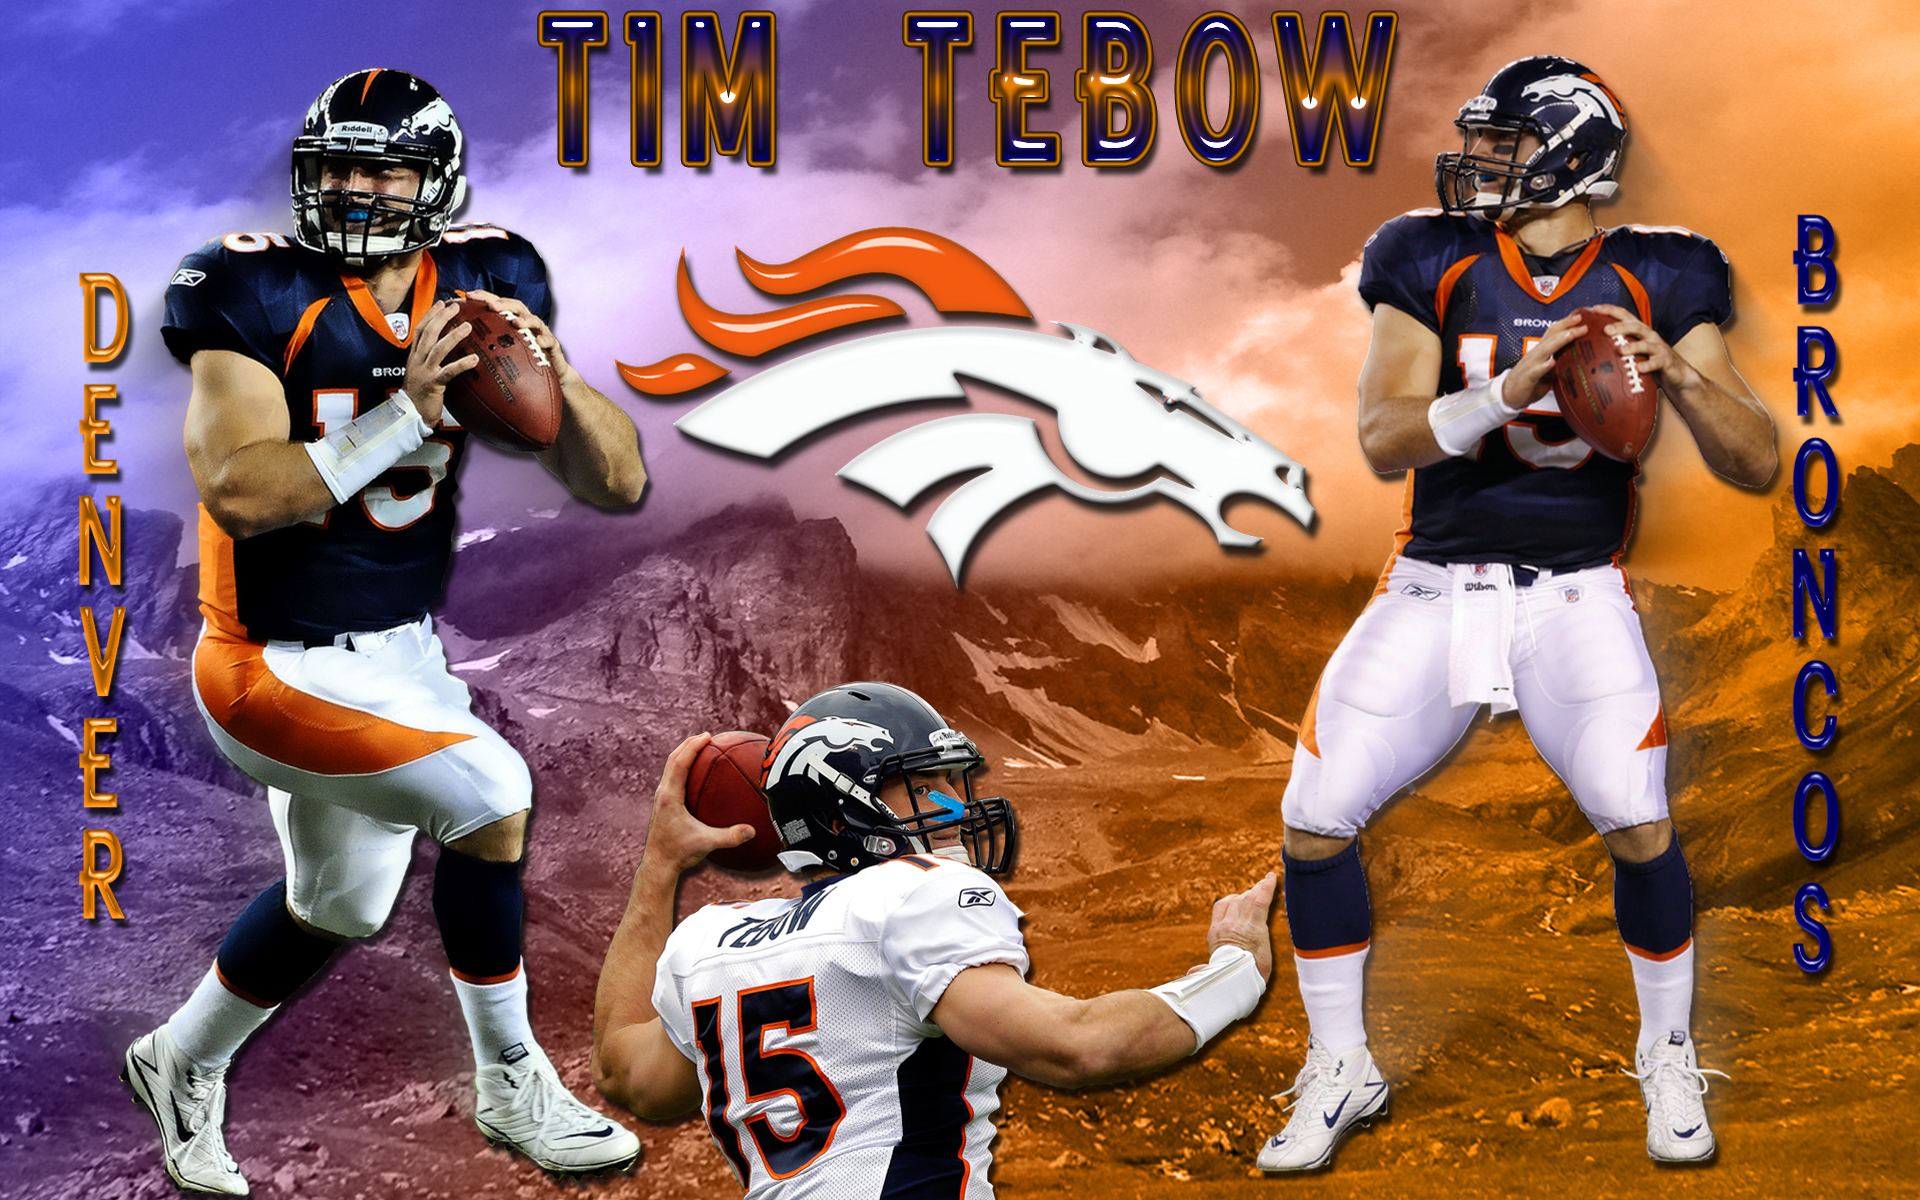 Denver broncos wallpaper screens wallpapersafari wallpapers by wicked shadows tim tebow denver broncos wallpaper voltagebd Image collections